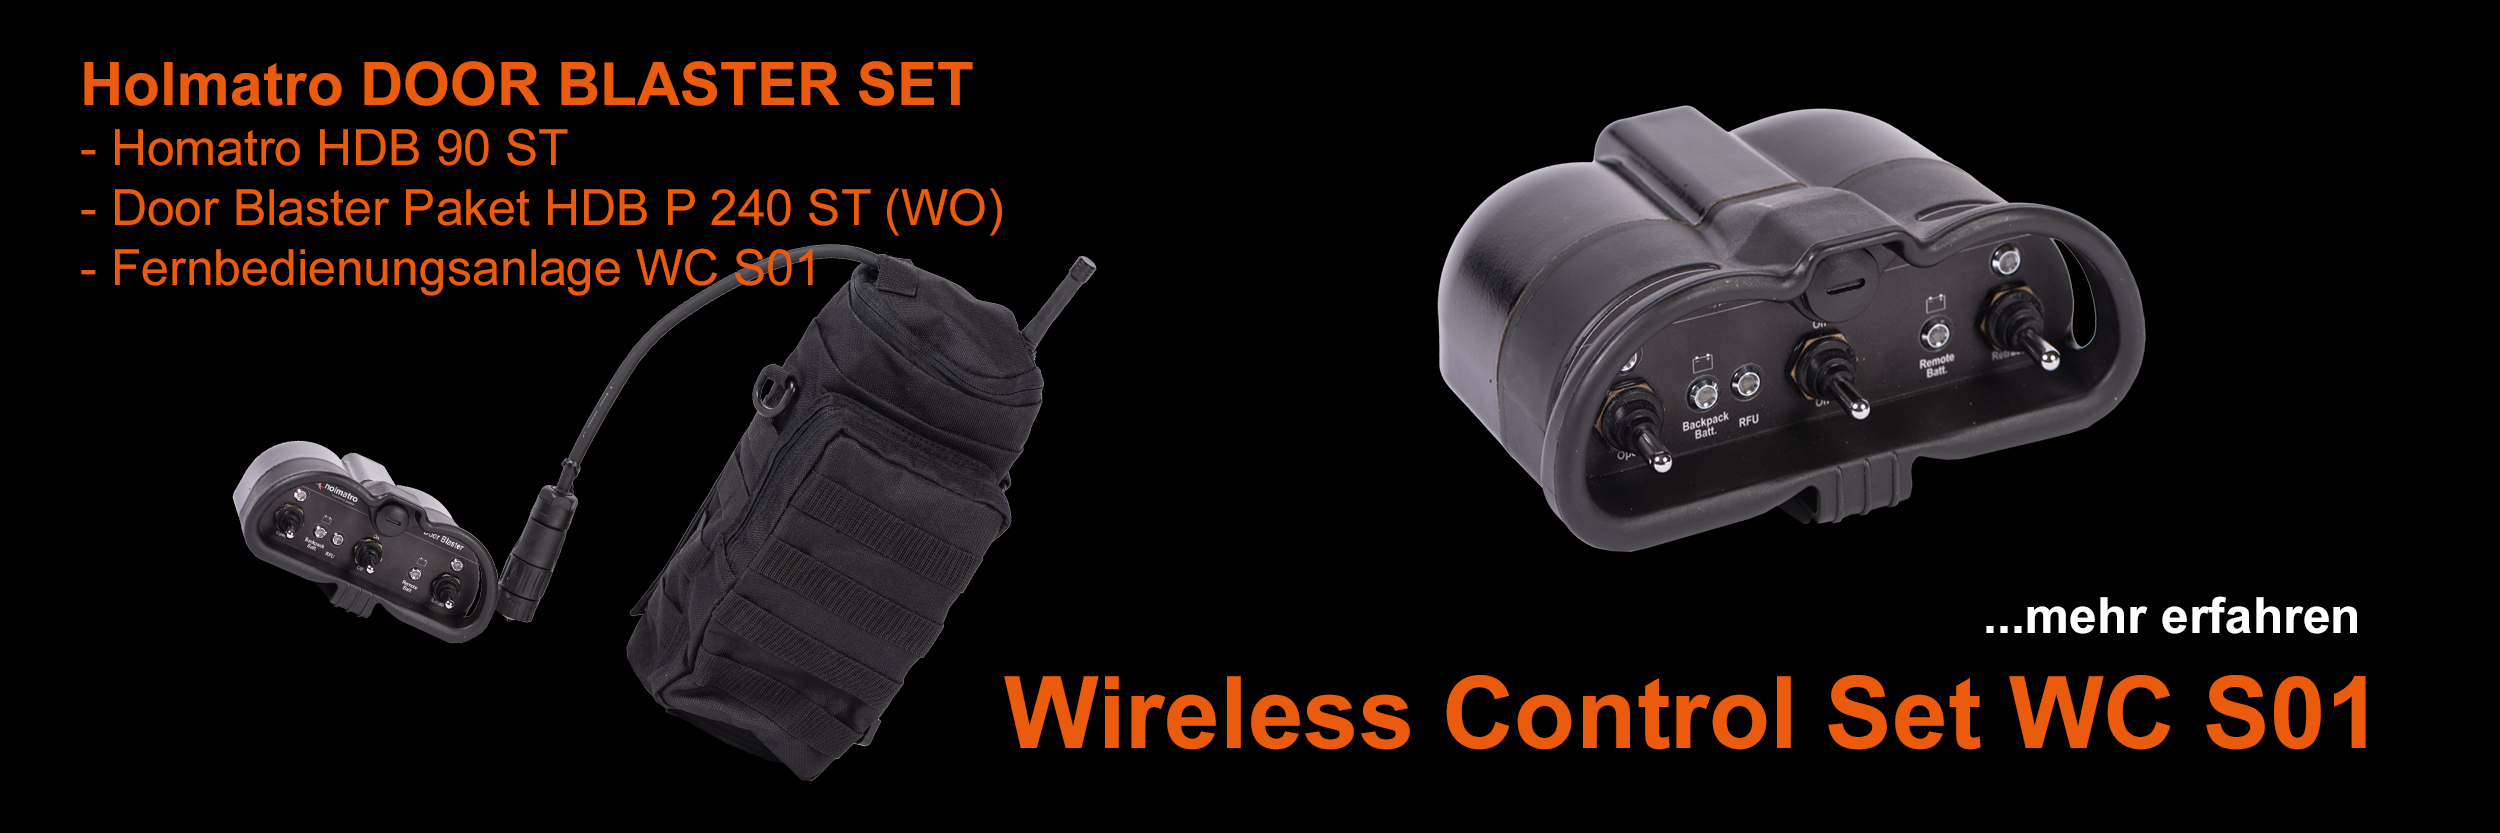 Wireless-Control-Set-WCS01